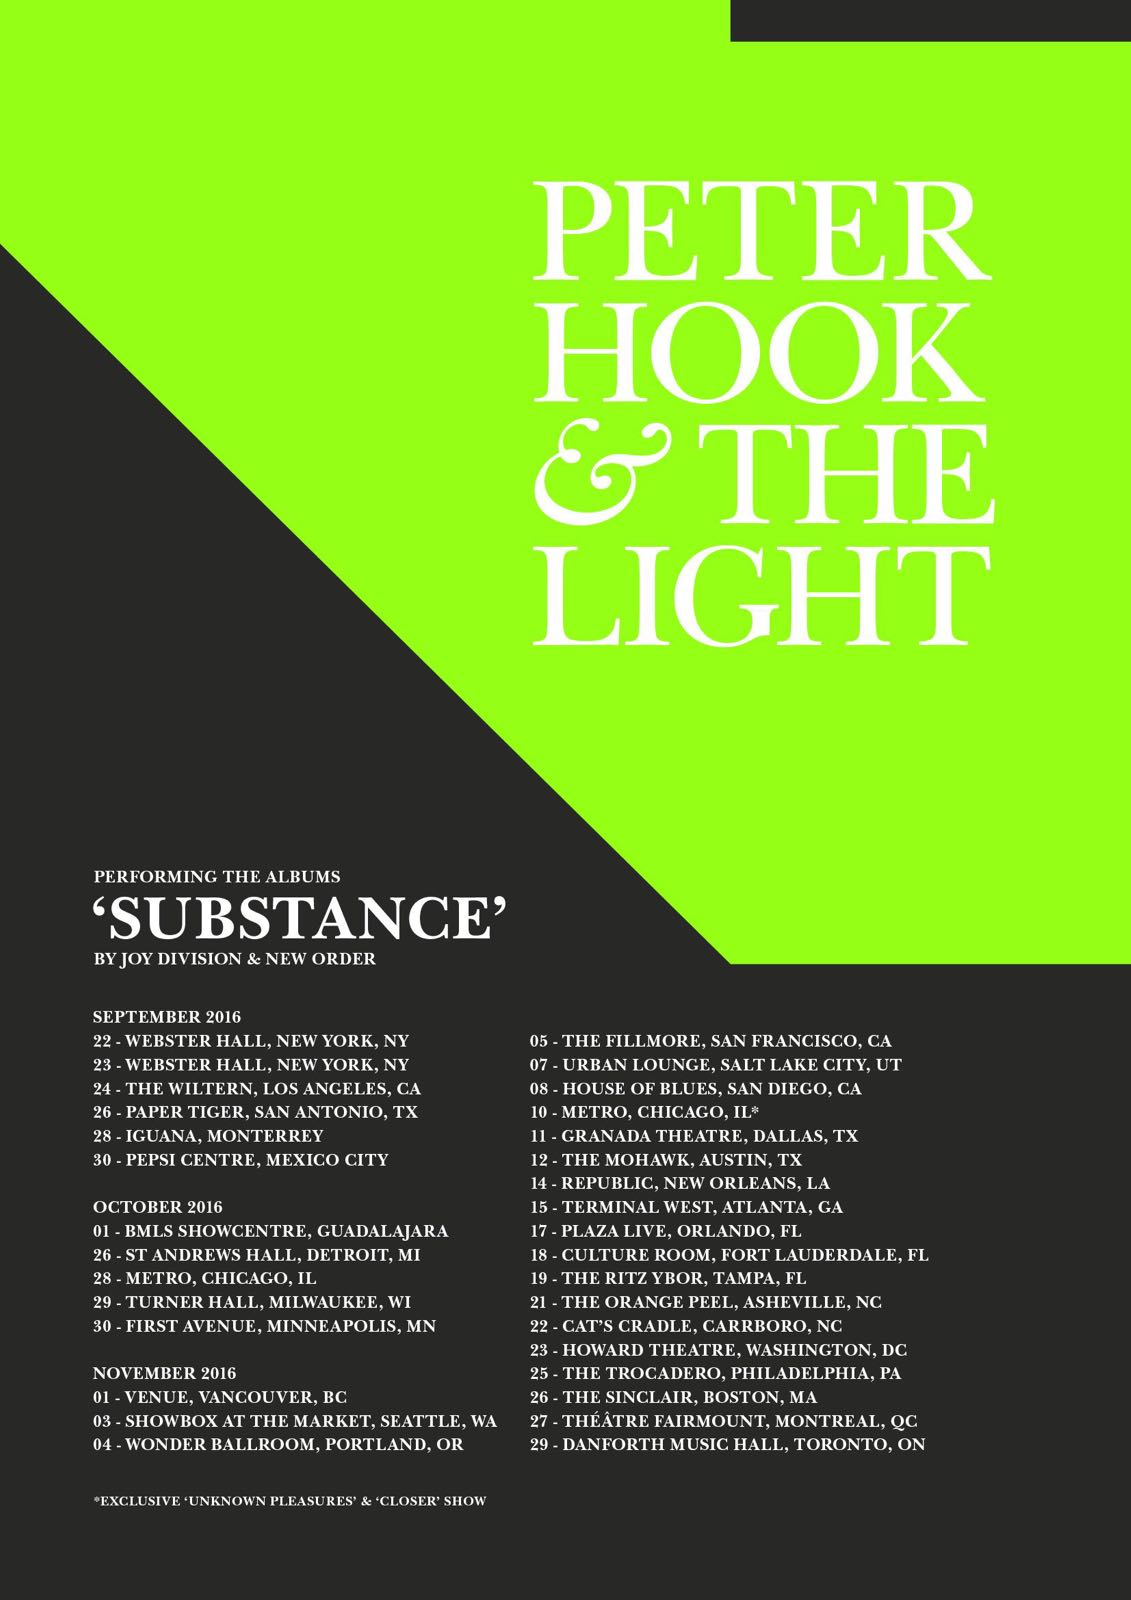 Peter Hook The Light Returning To Tour The United States Will